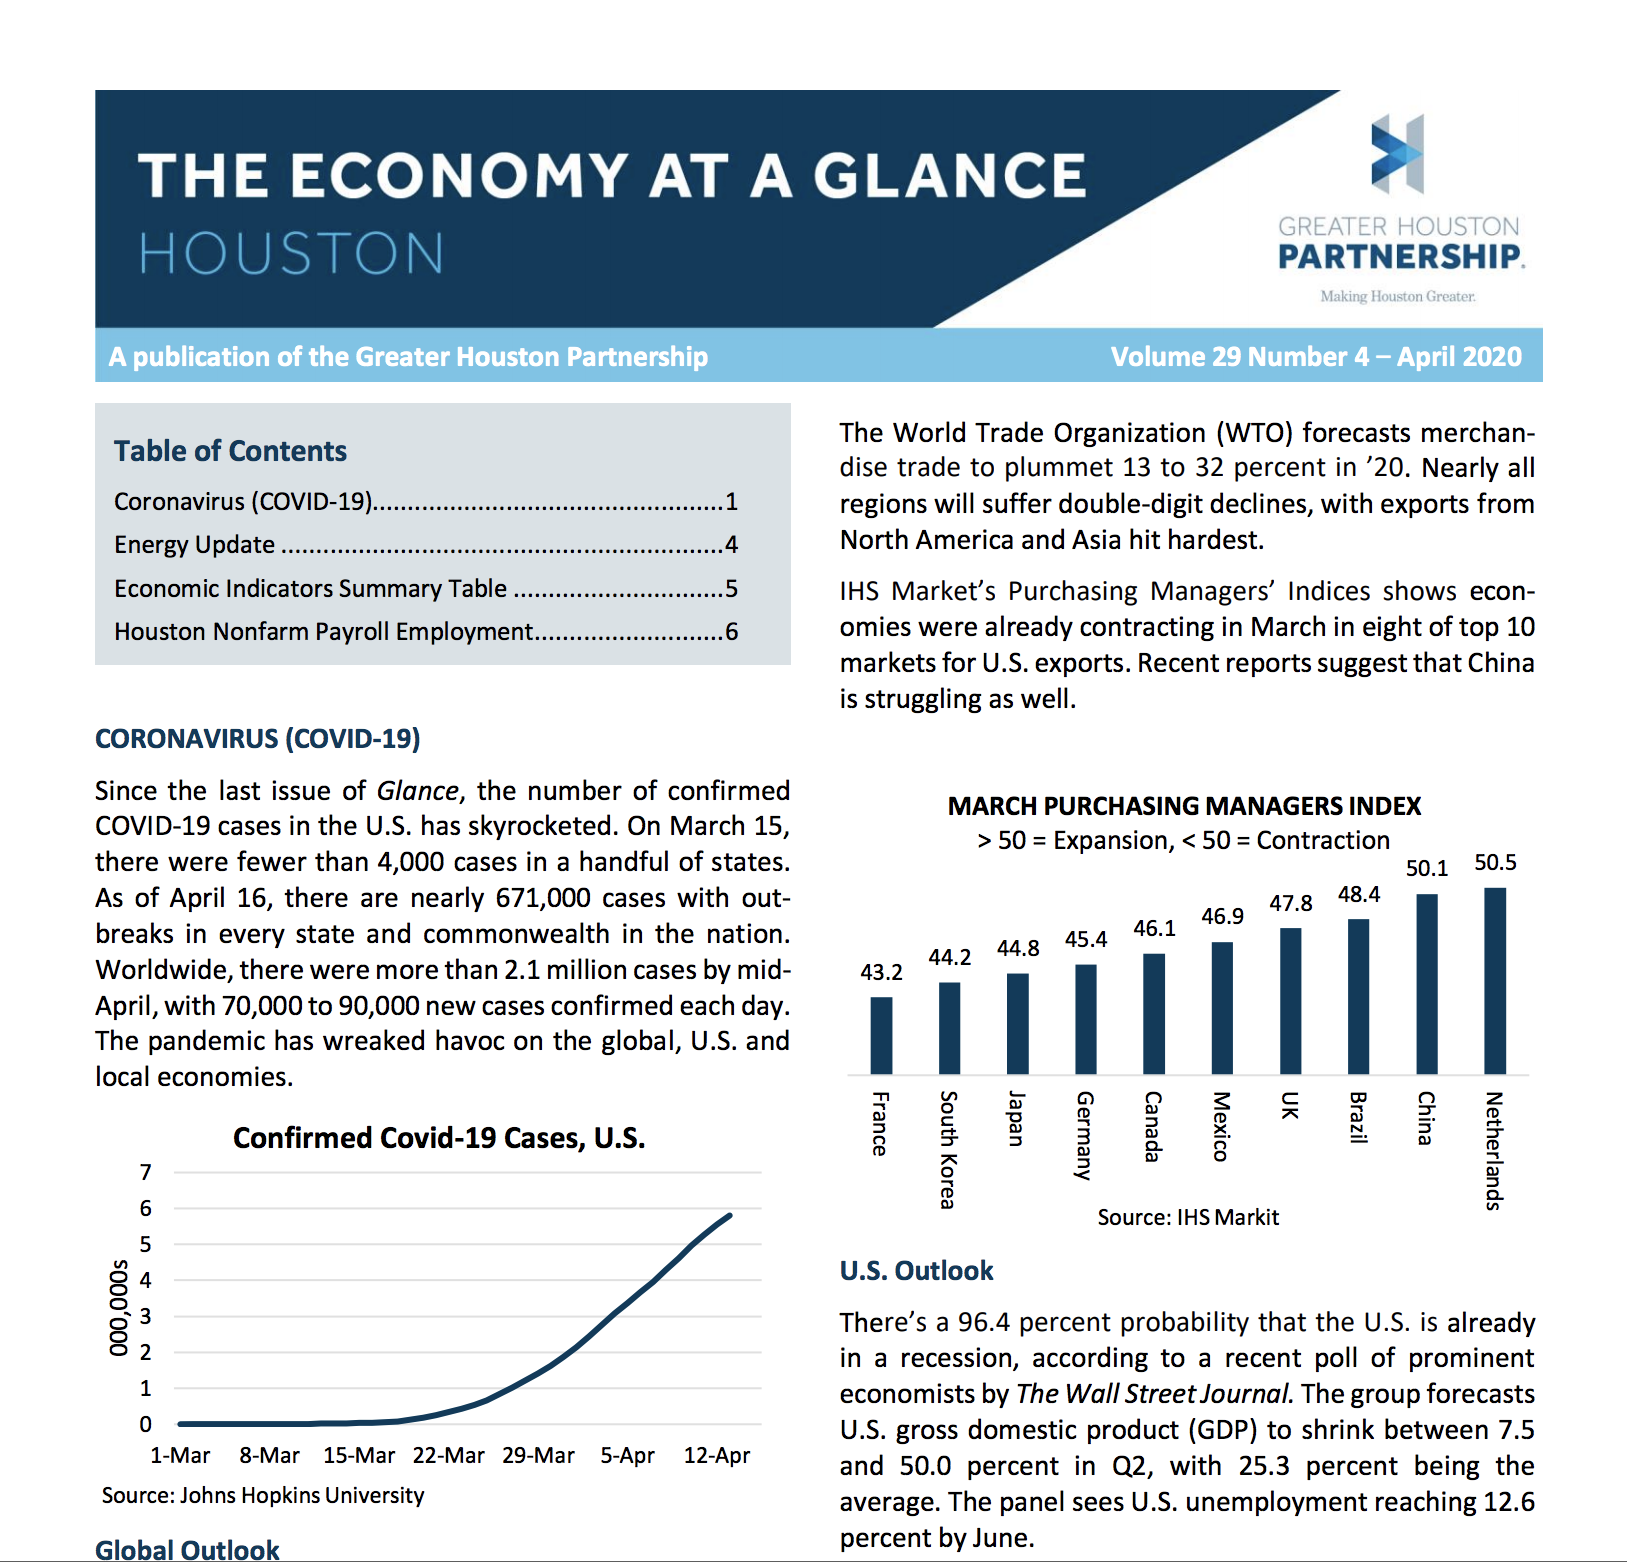 Greater Houston Partnership's April Economy at a Glance